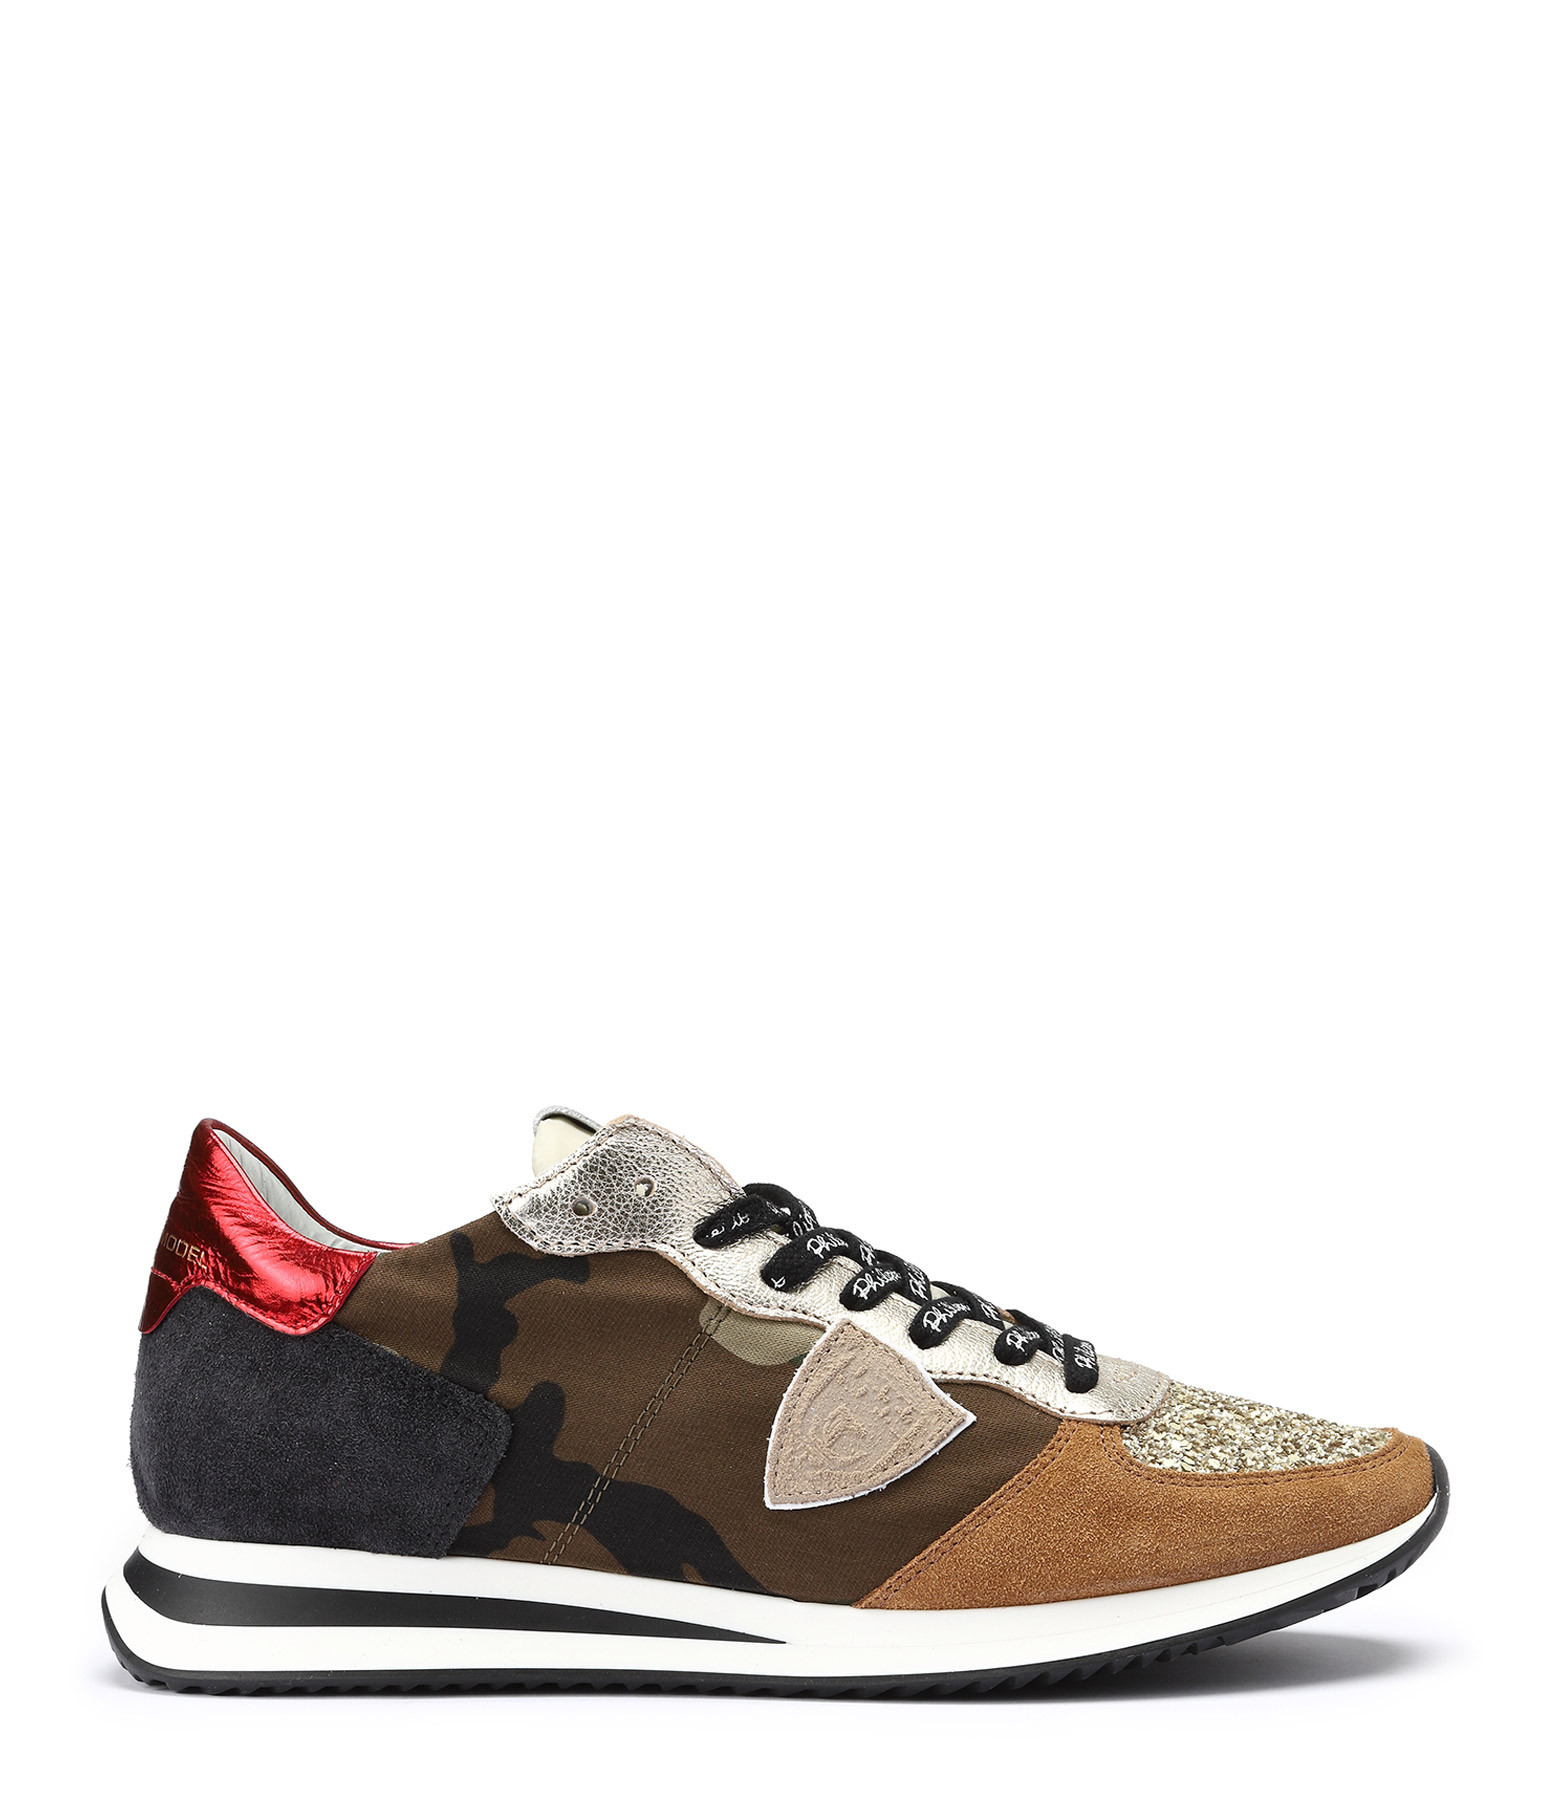 PHILIPPE MODEL - Baskets Trpx Paillettes Camouflage